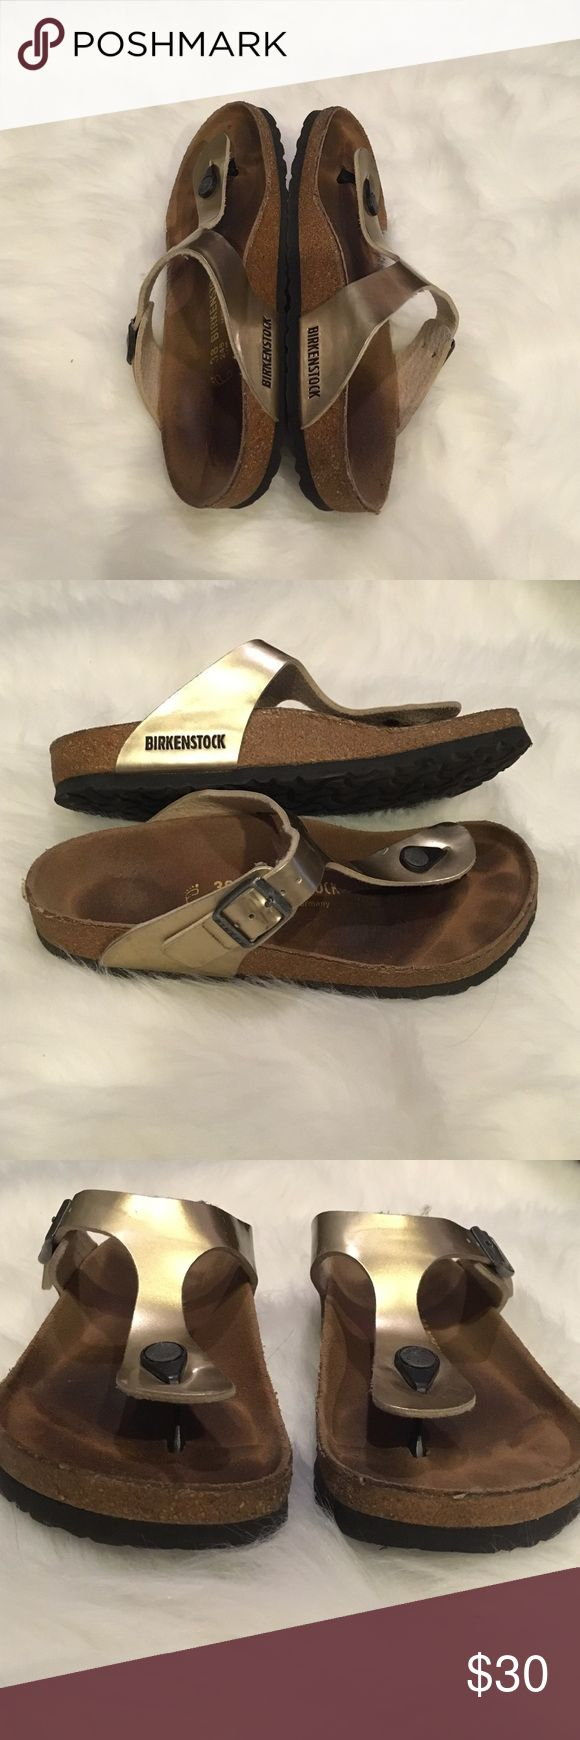 Birkenstock Gizeh' Birko-Flor Gold Birkenstock Gizeh' Birko-Flor Gold. Gently used. Great condition. No flaws. These are a size 7-7 1/2 per the Birkenstock sizing chart. They say 38 on the sandal. Birkenstock Shoes Sandals